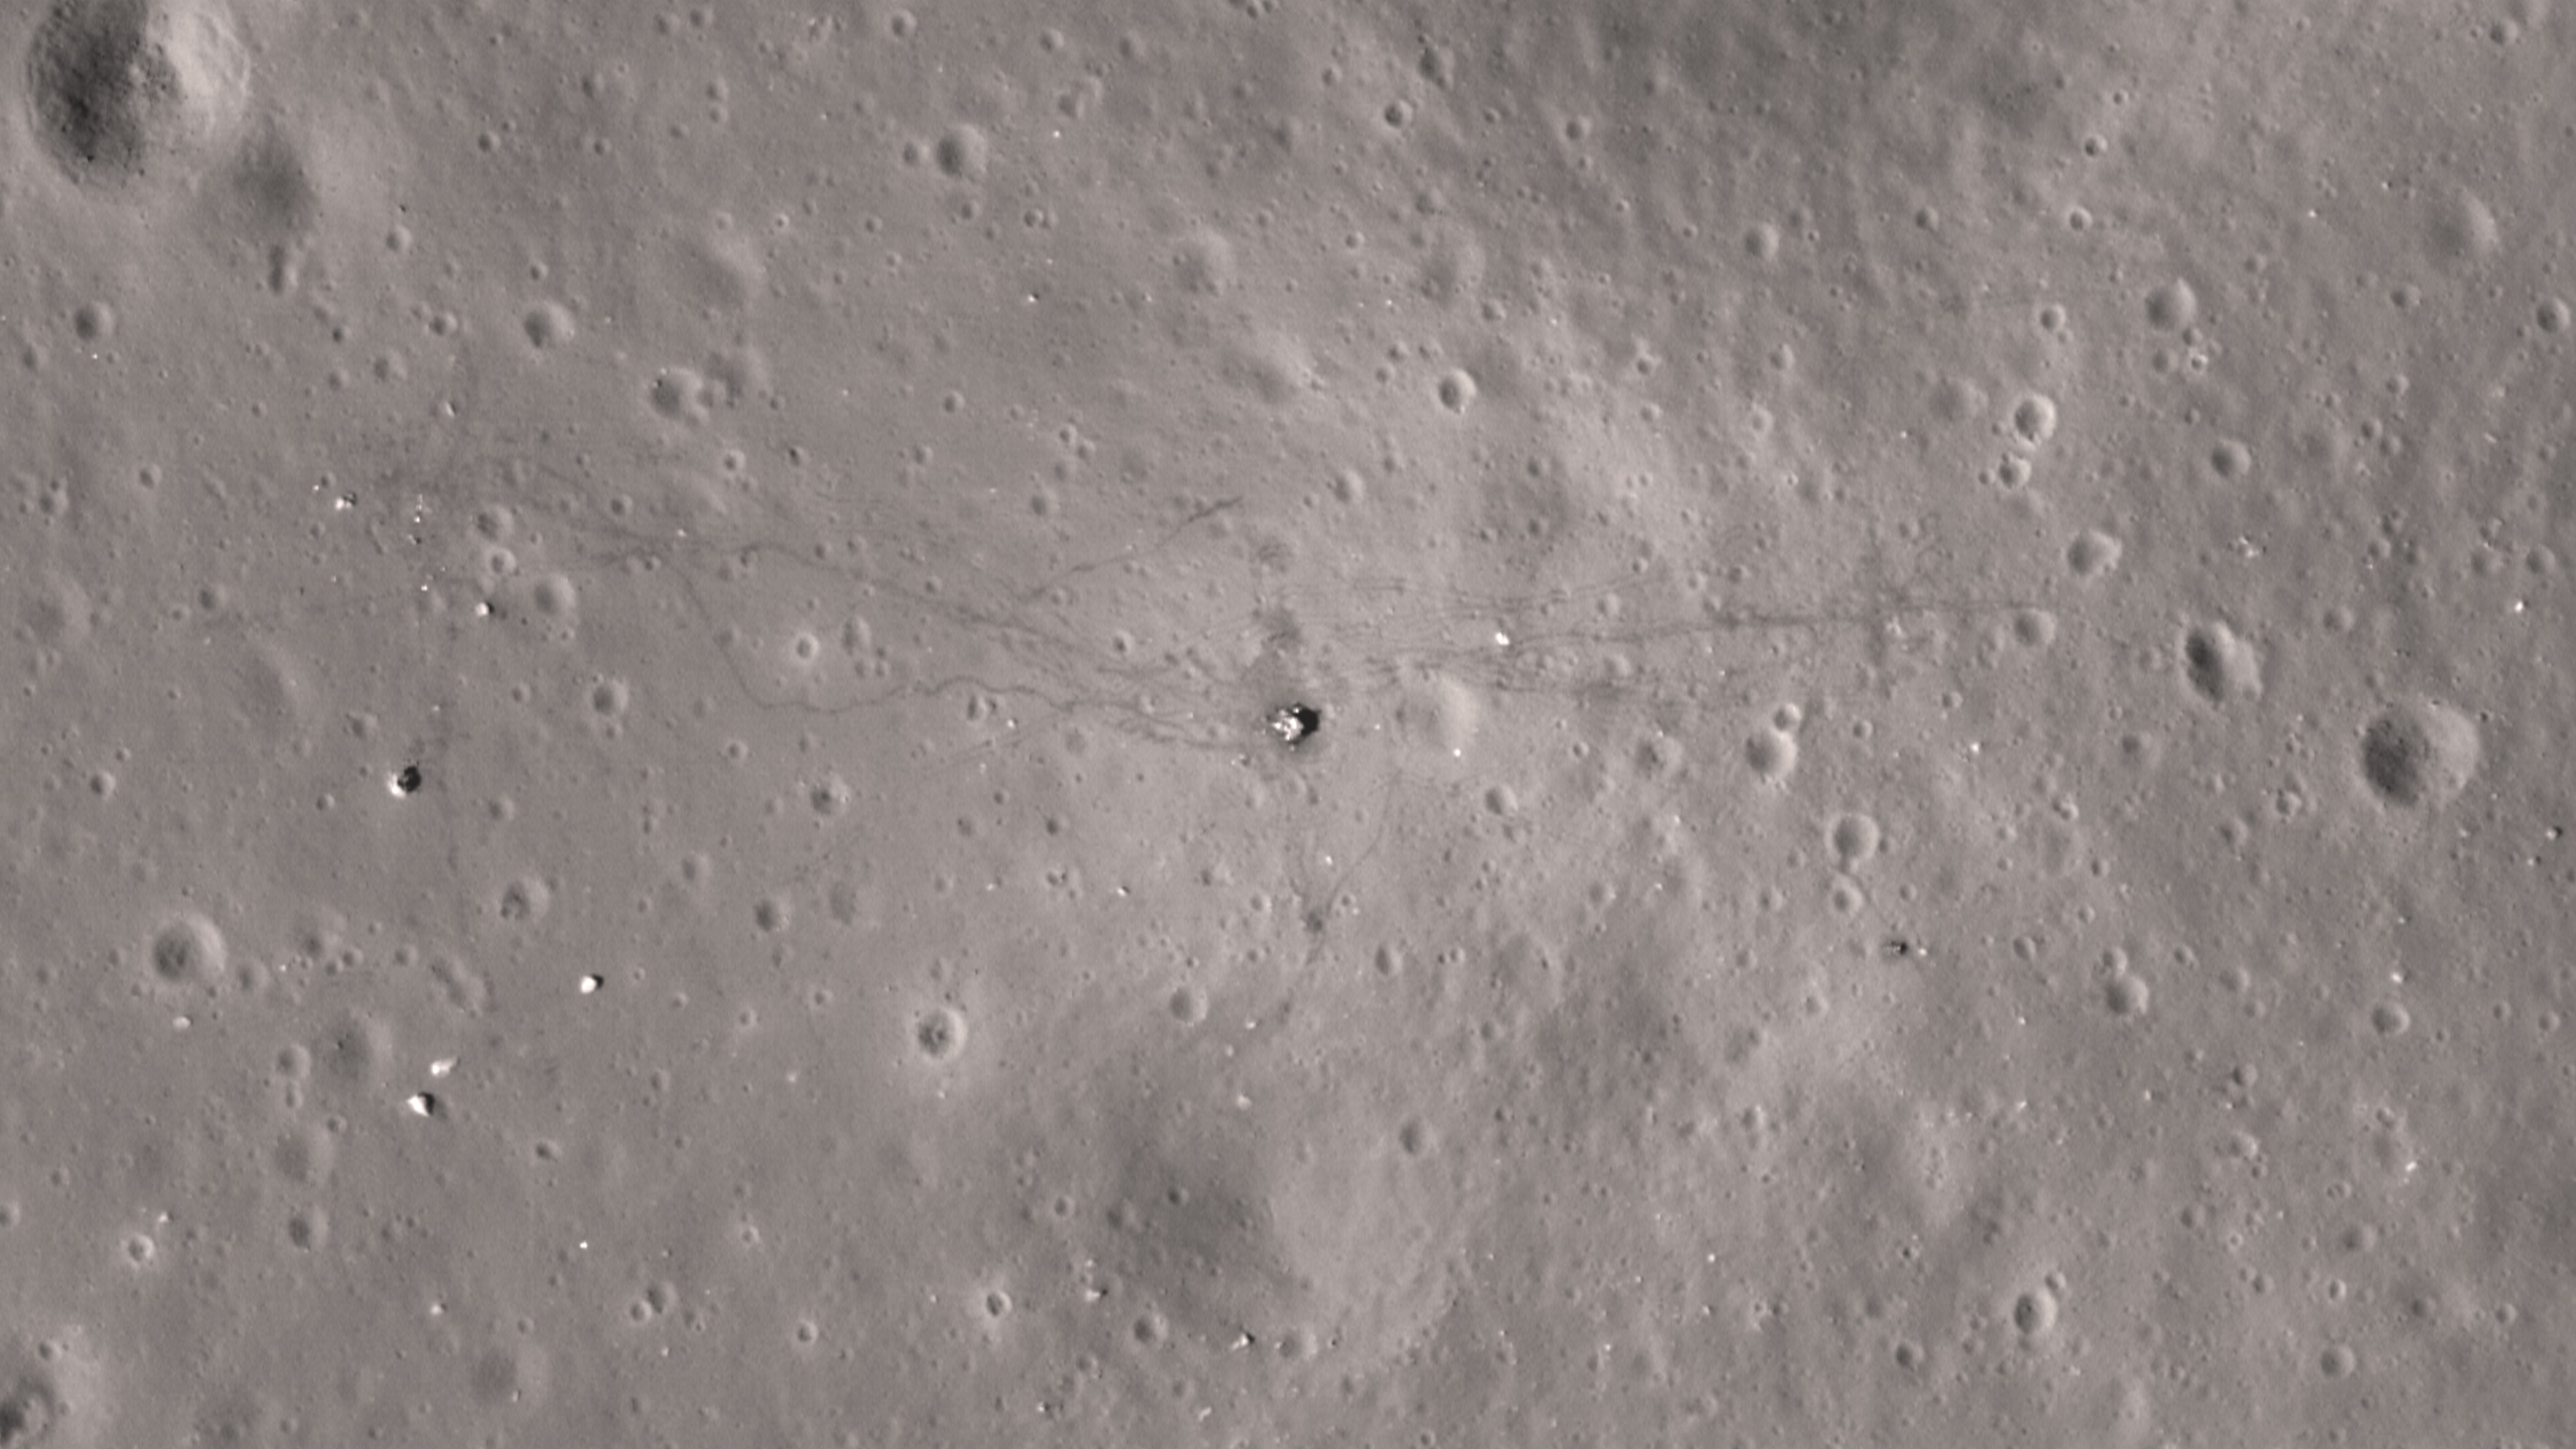 1920X1080 Apollo 18 Landing Site - Pics about space